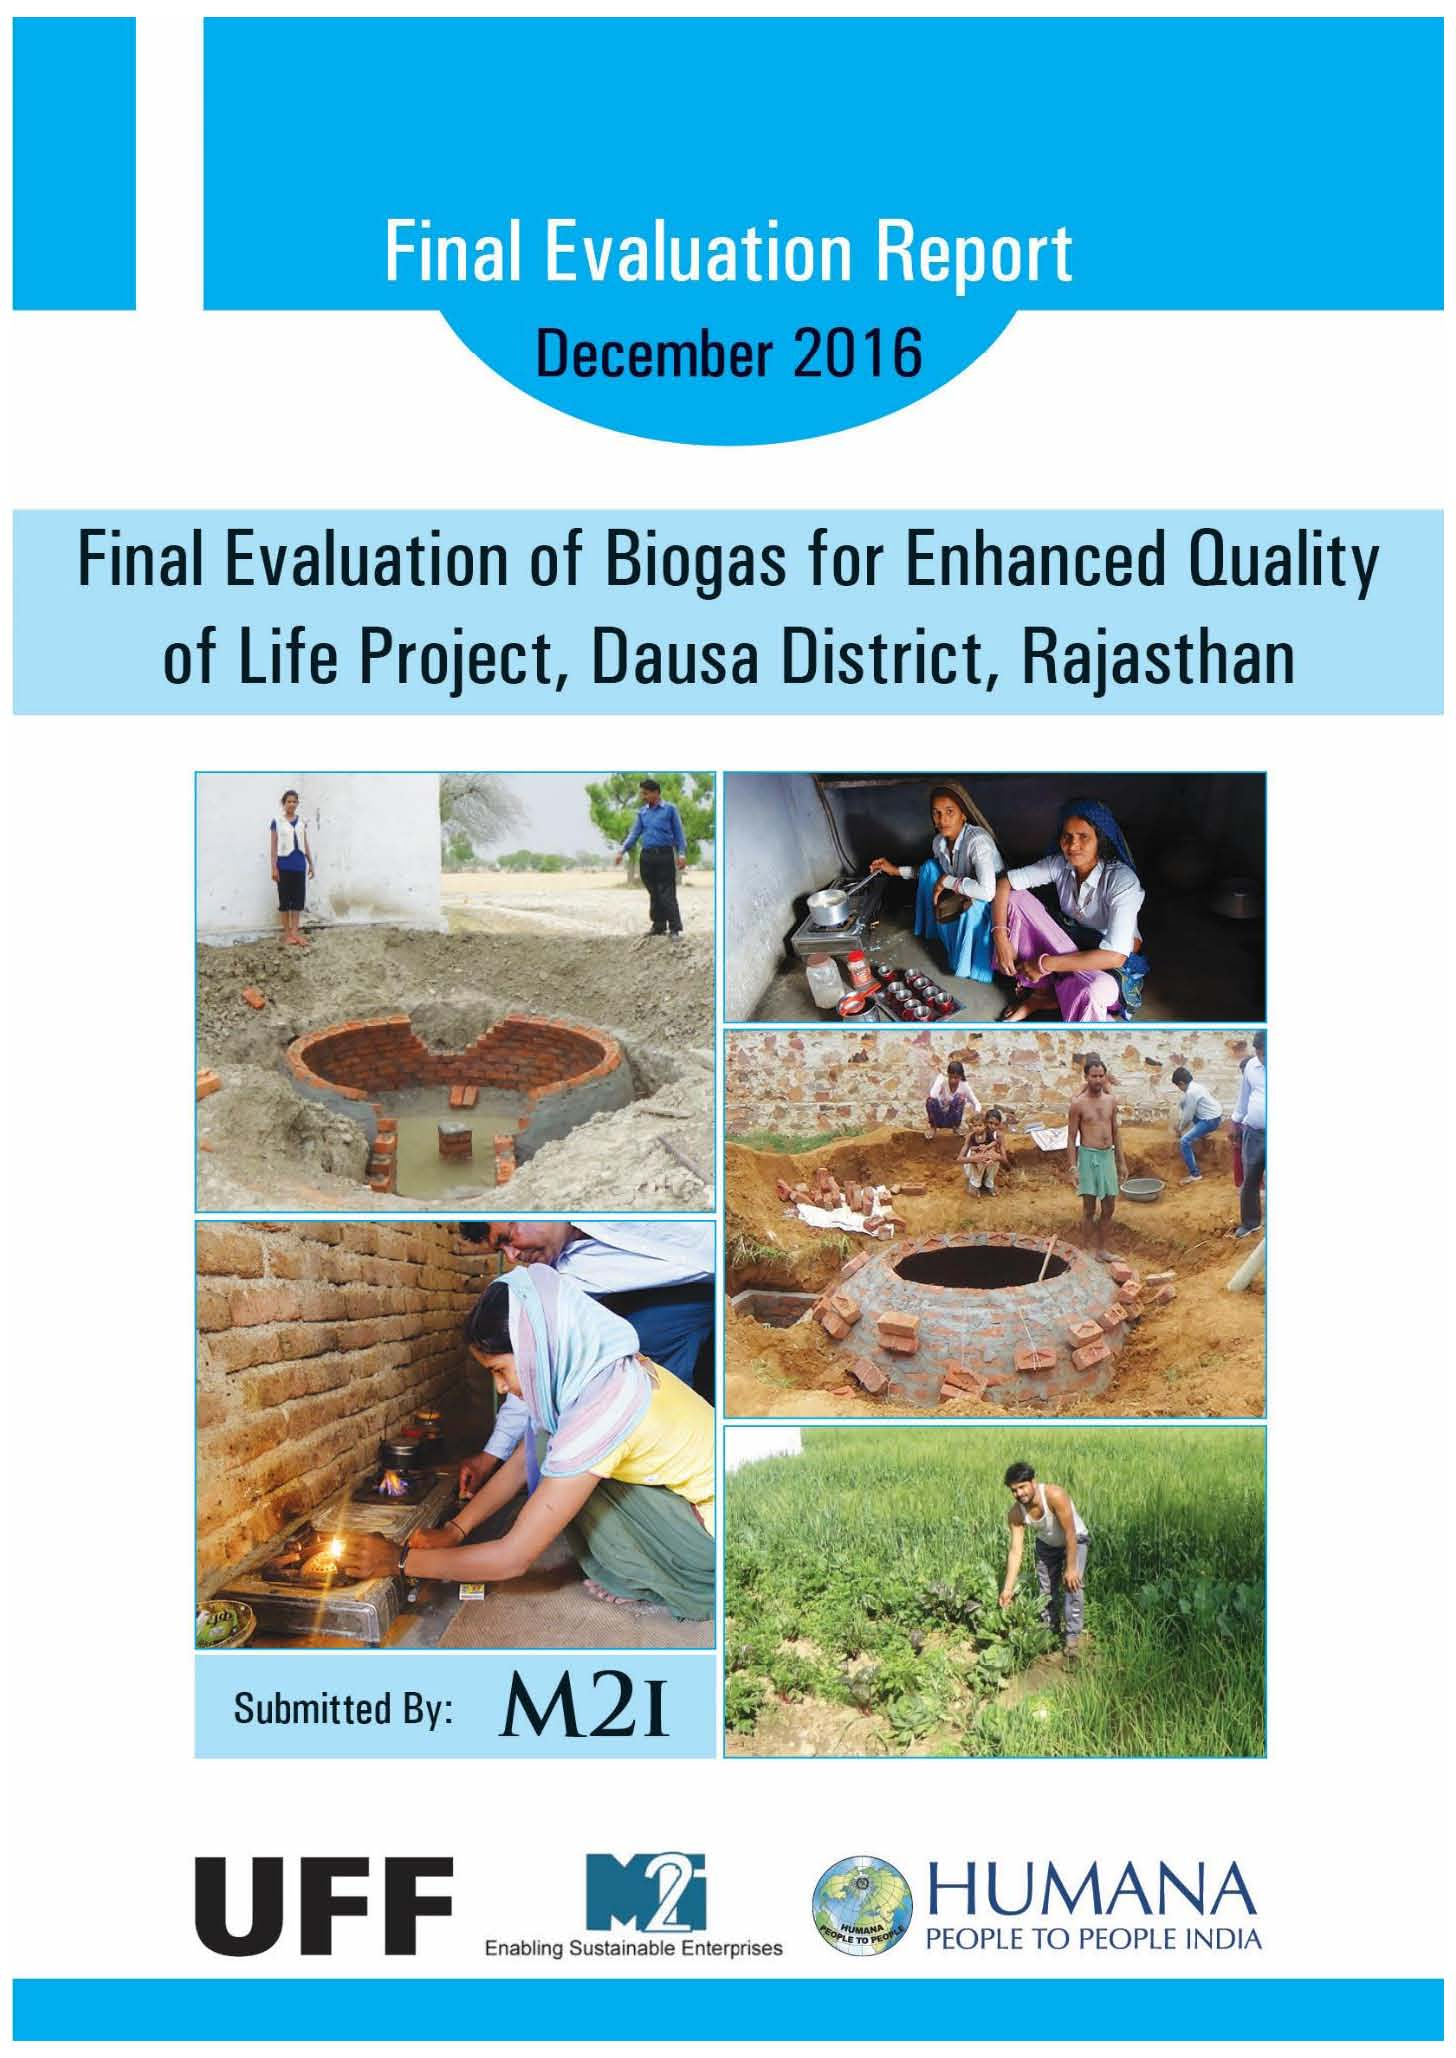 Biogas-Final-Evaluation-Report